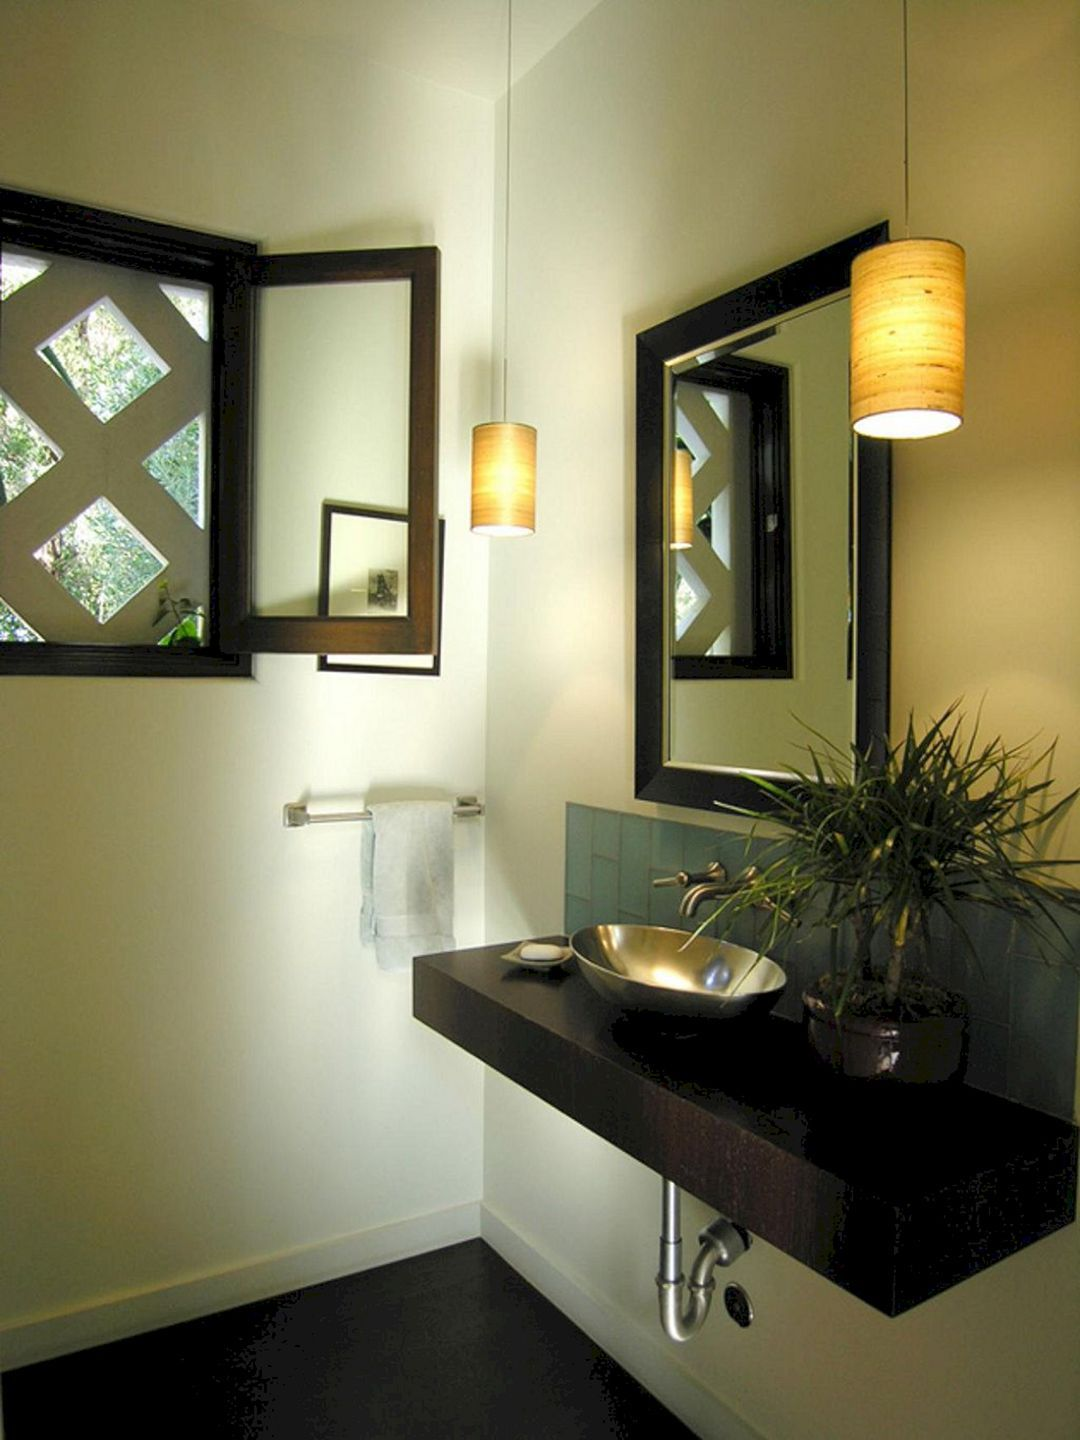 7 Interesting Bathroom Lamp Ideas To Make It More